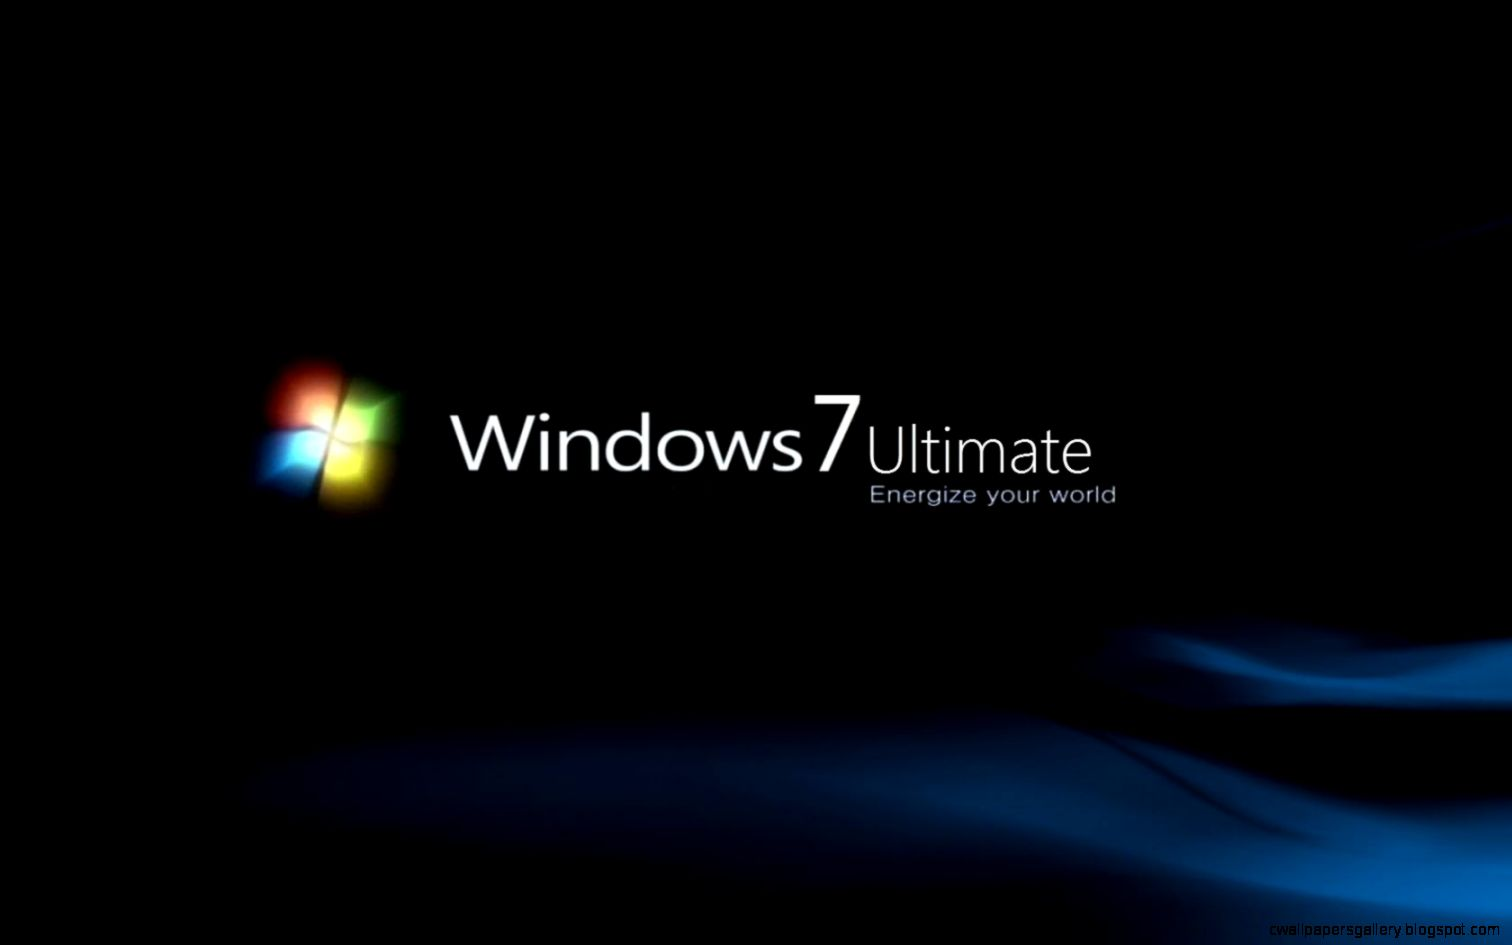 HD Wallpapers for 2015 Windows 7 Ultimate hd wallpaper download